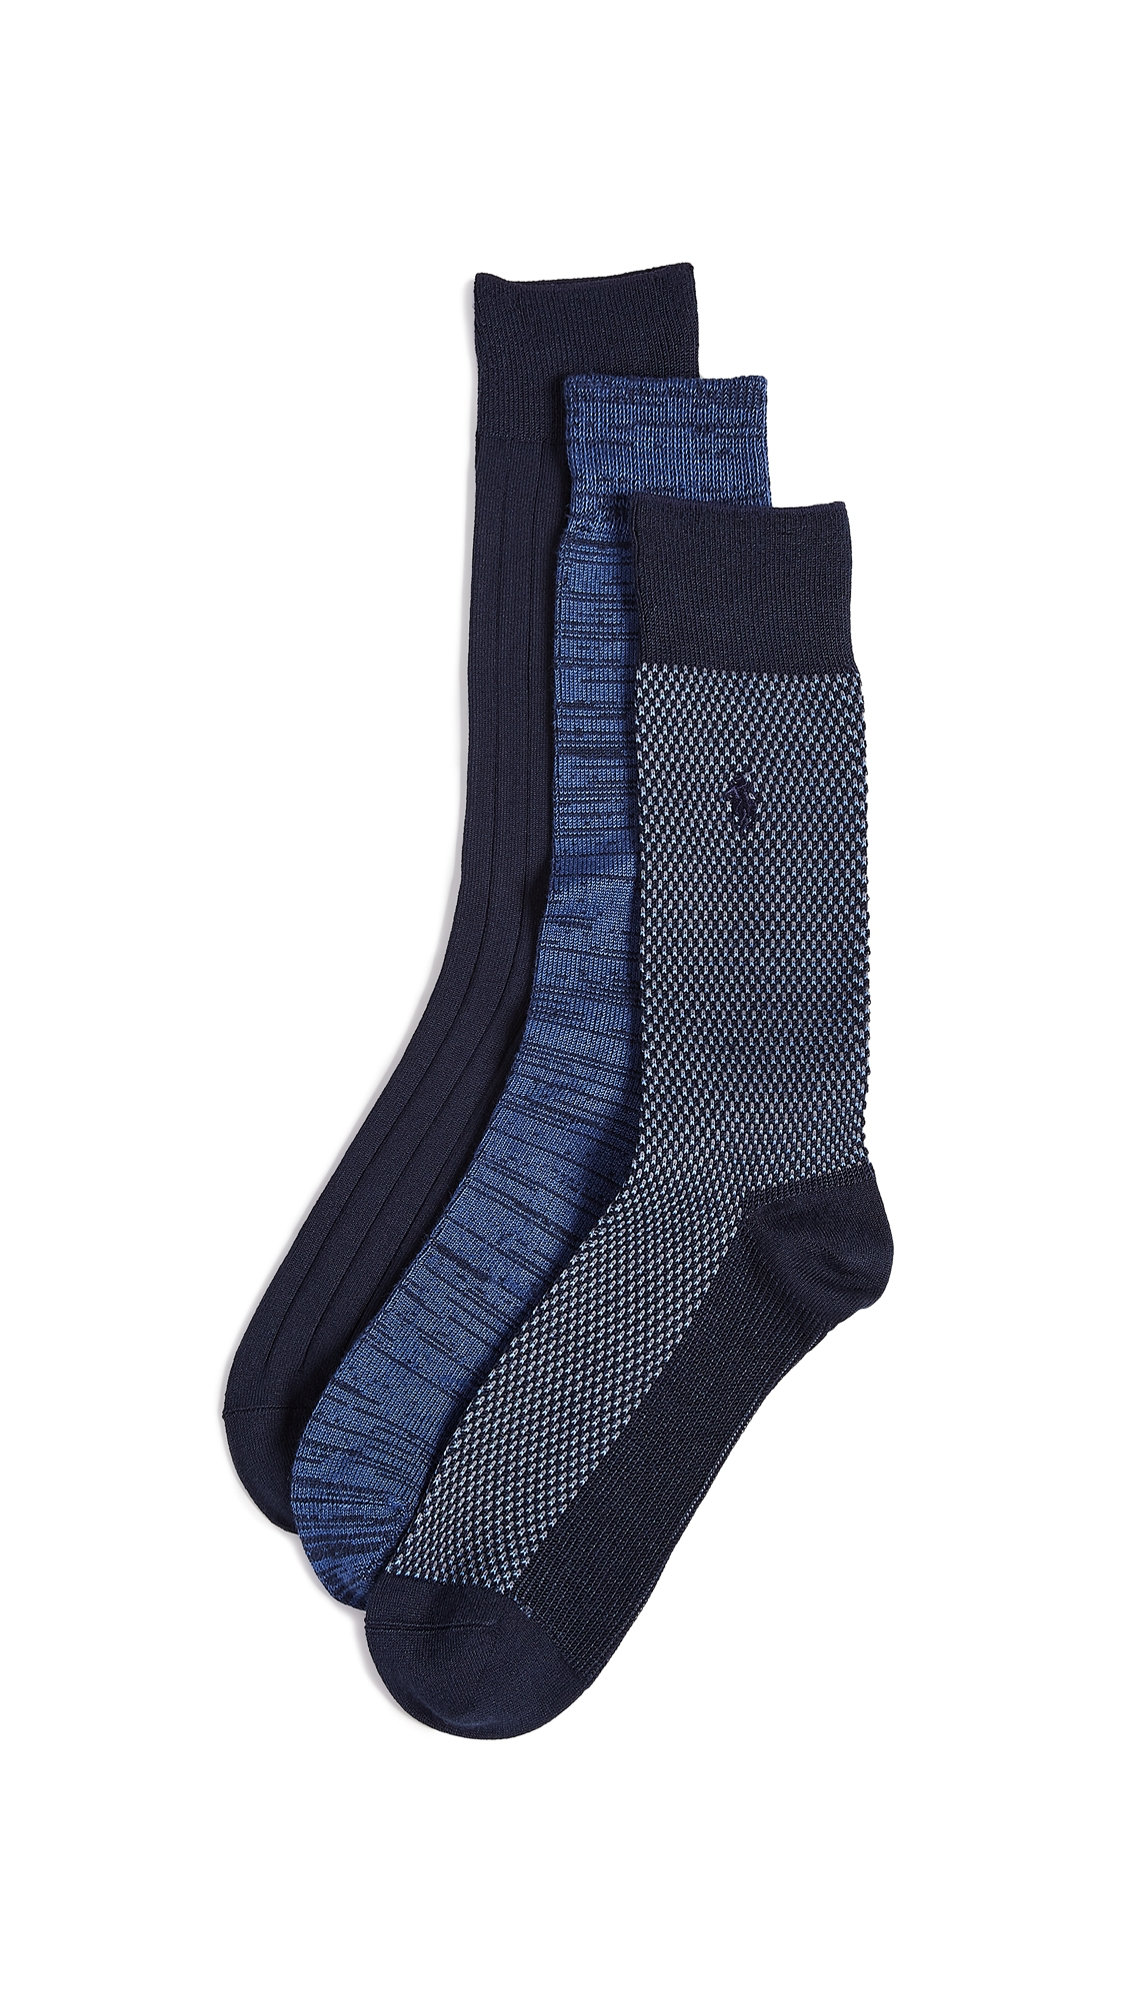 POLO RALPH LAUREN 3 PACK SUPERSOFT BIRDSEYE SOCKS